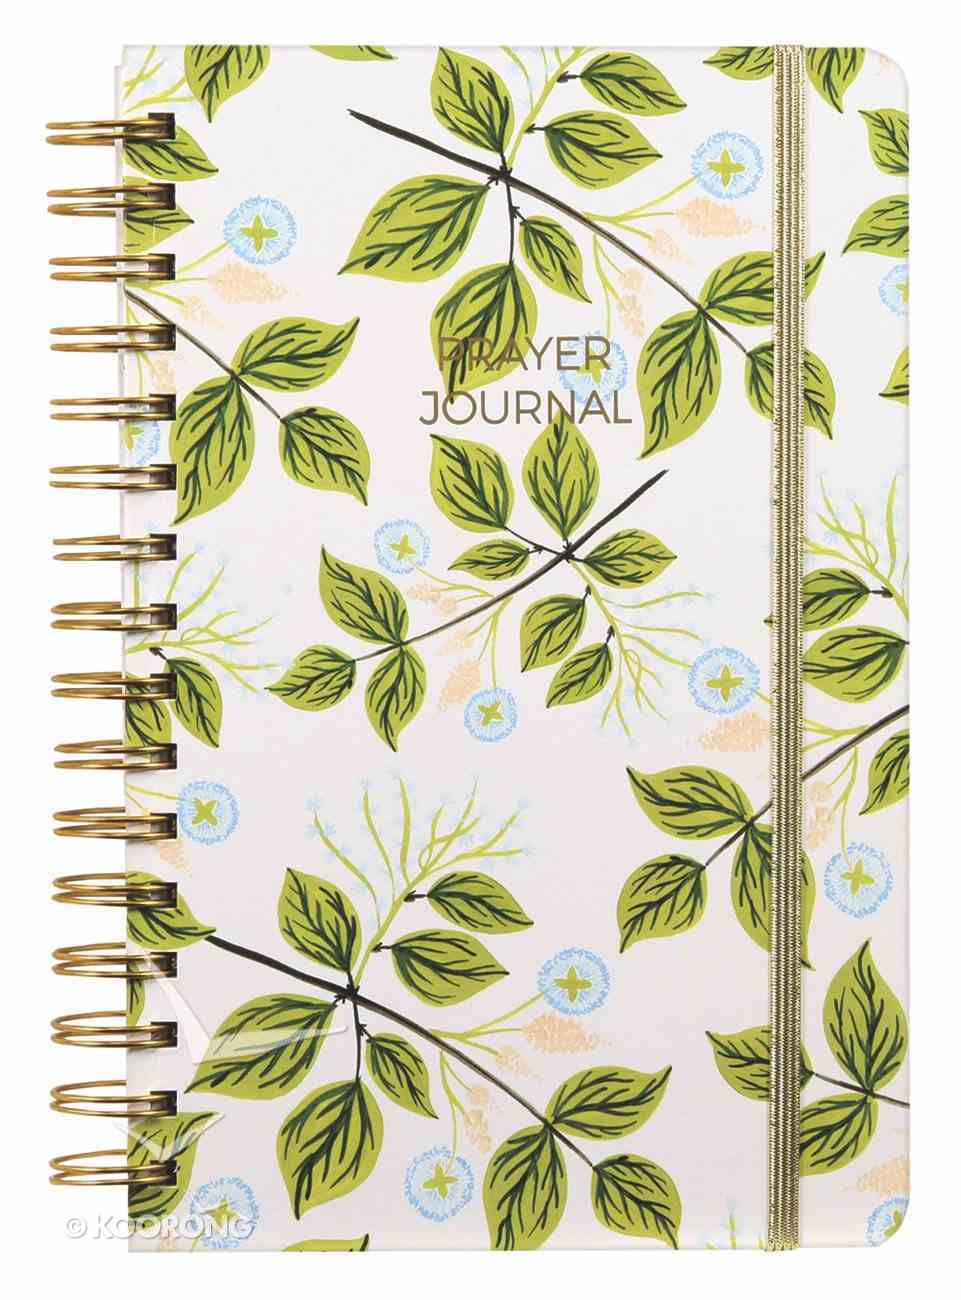 Prayer Journal: One Year Weekly Layout (Blue Floral/green Leaf) Spiral